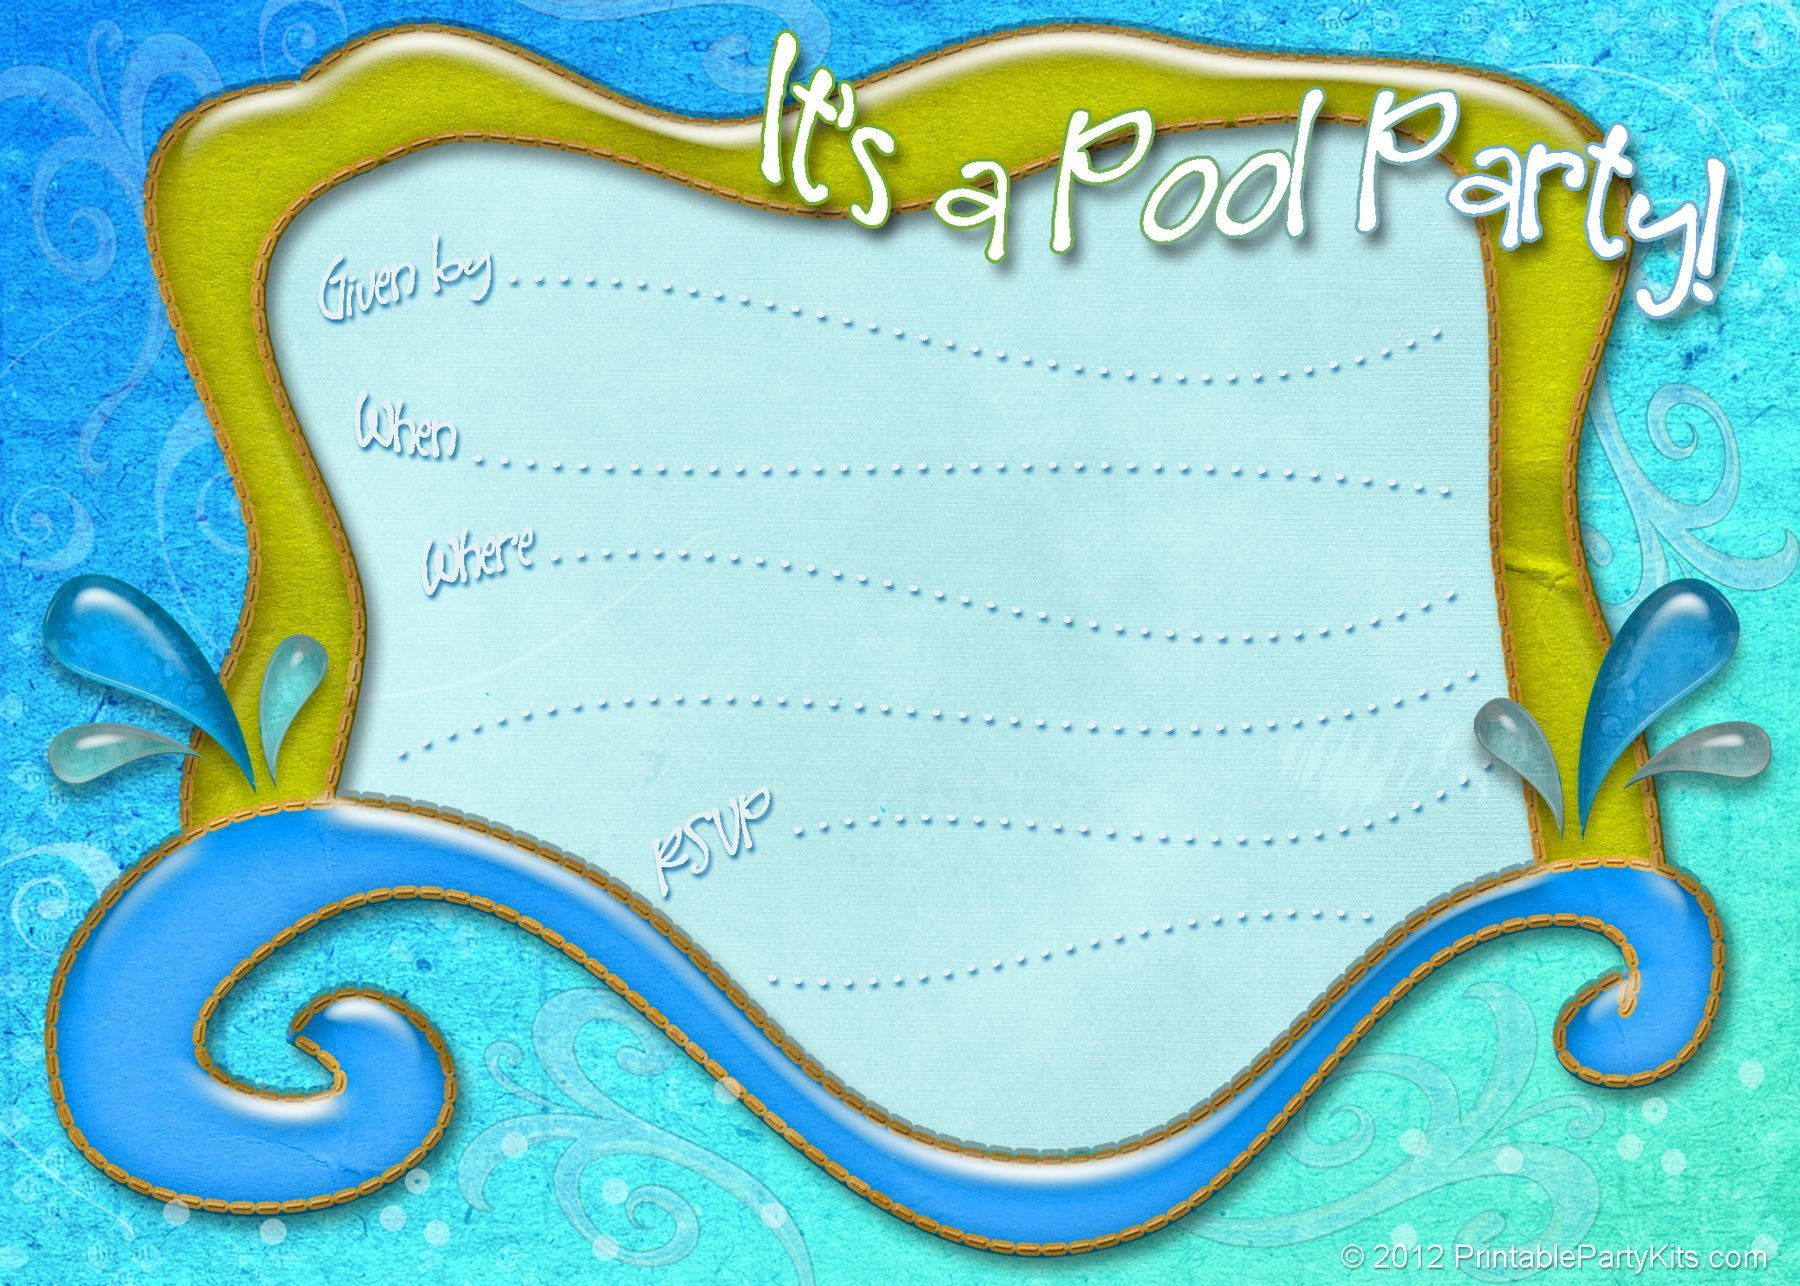 002 Unique Pool Party Invitation Template Free Sample  Downloadable Printable SwimmingFull